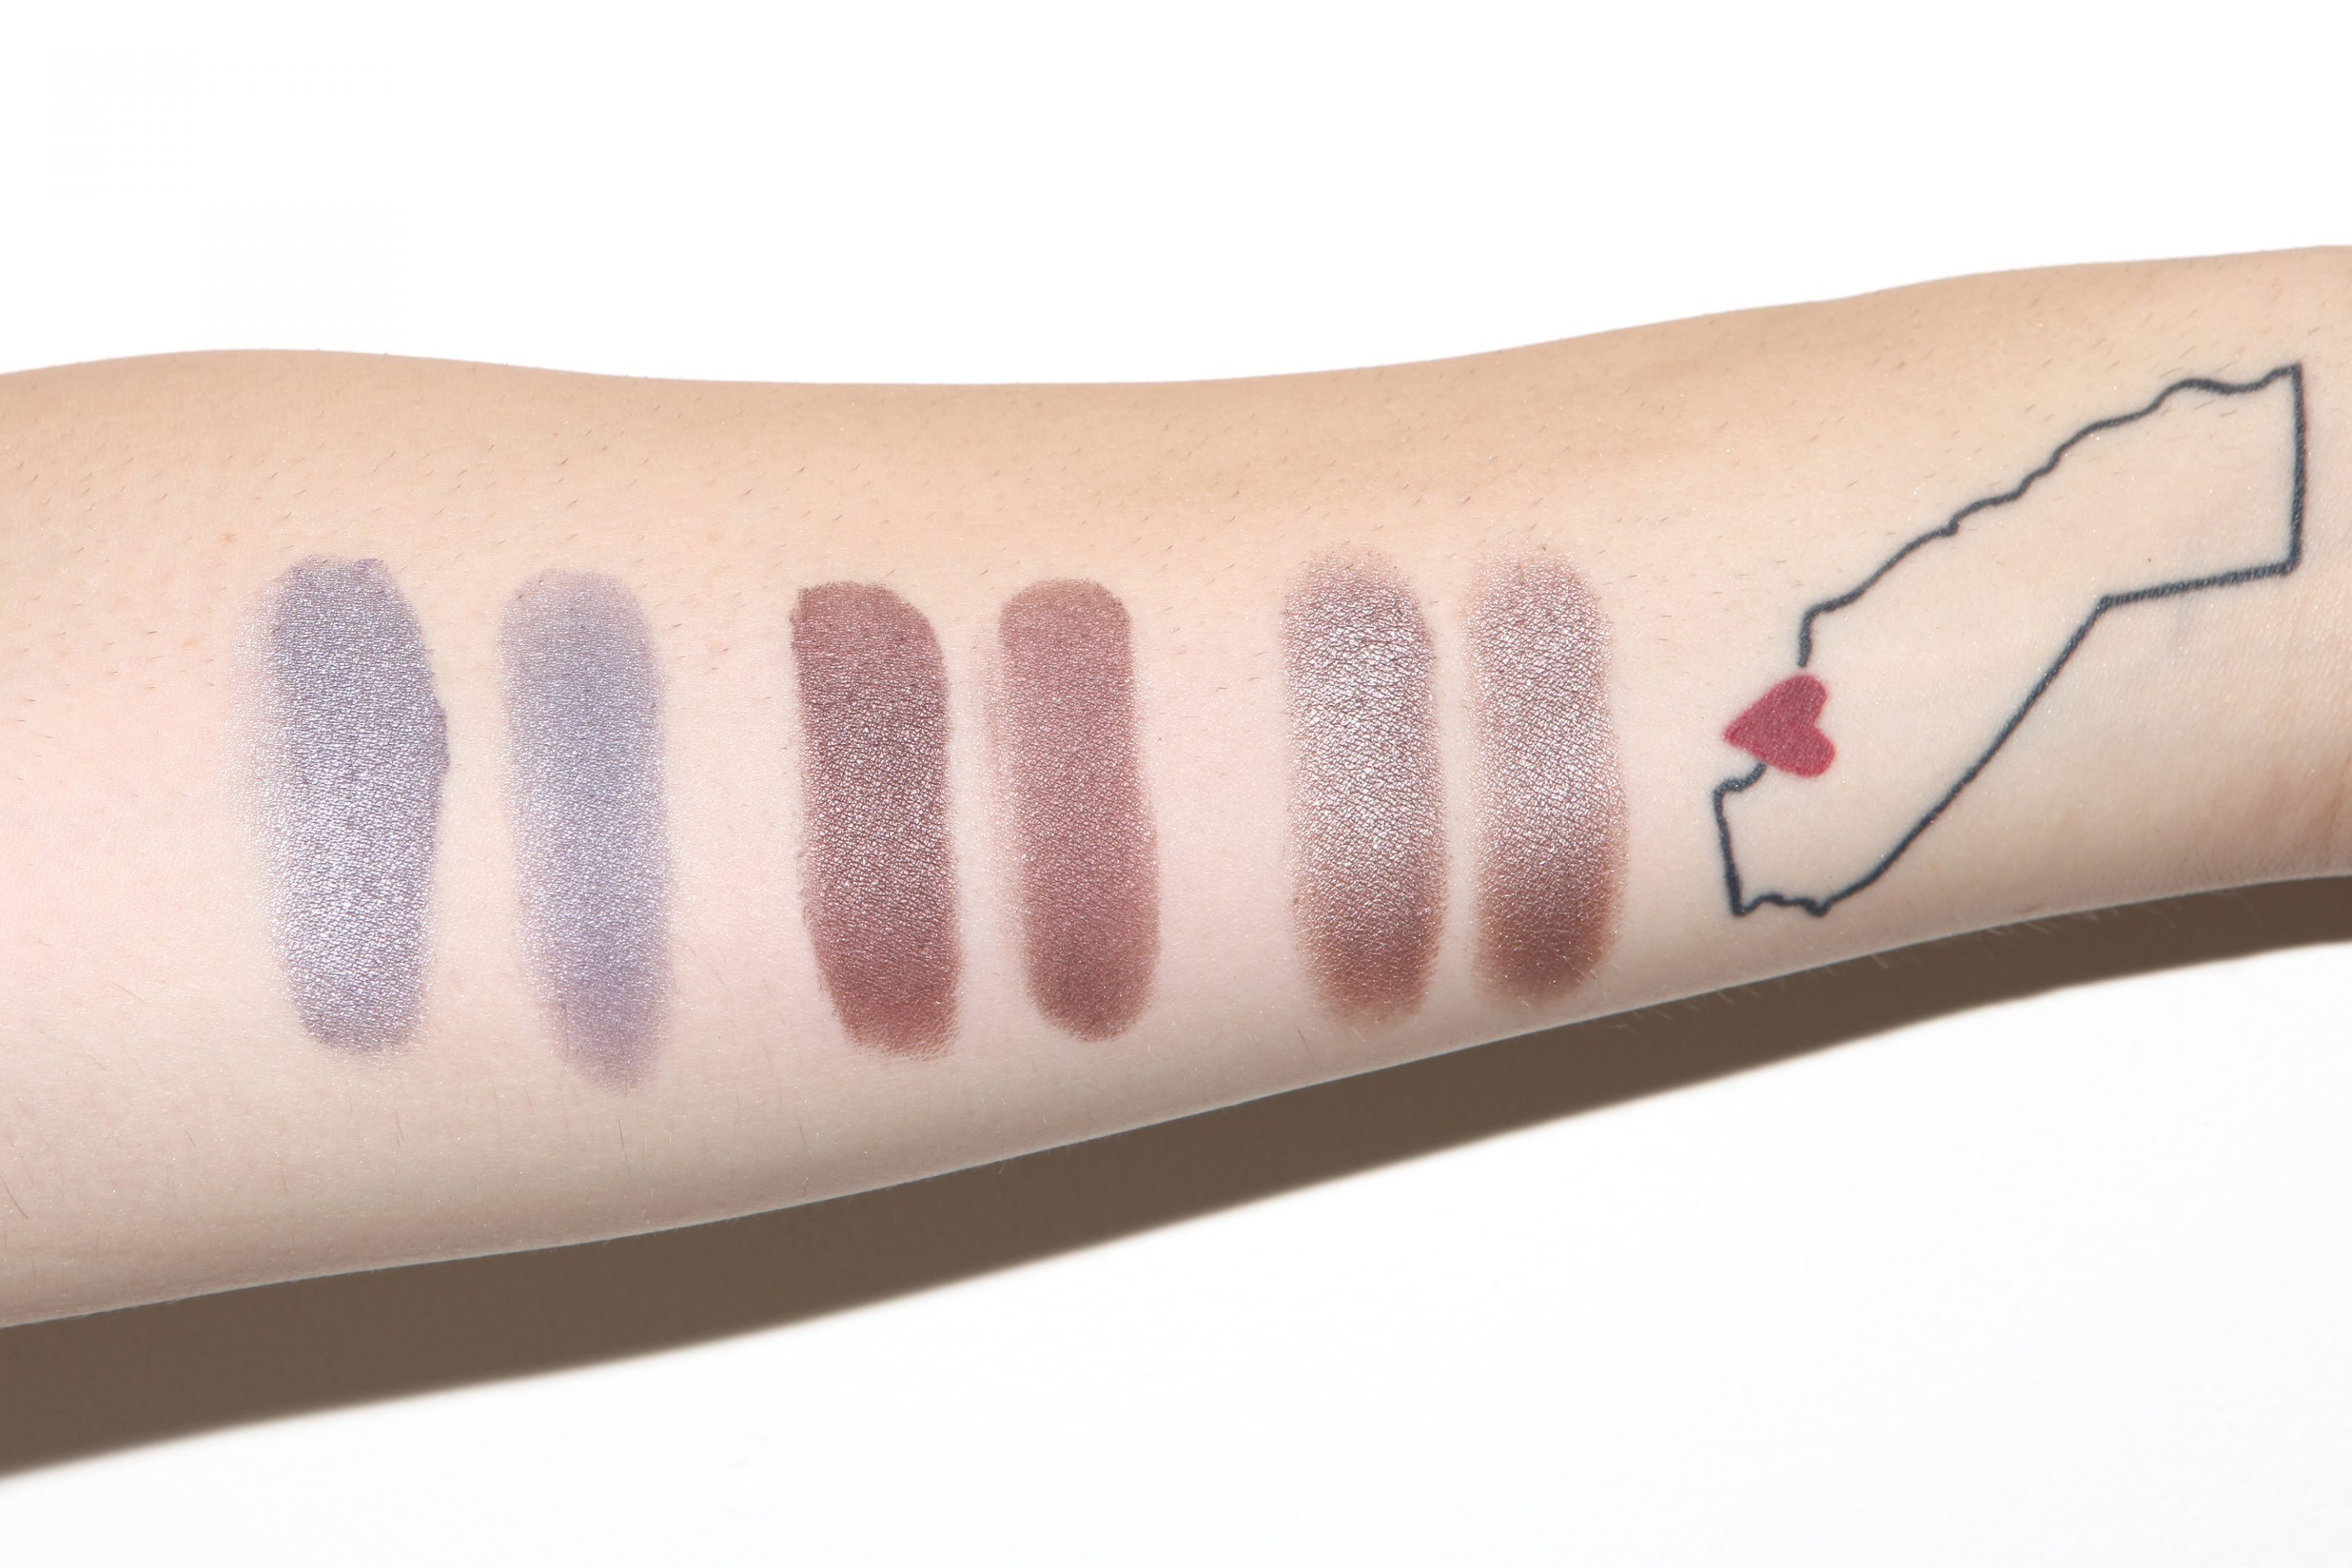 Swift Shadow by rms beauty #4